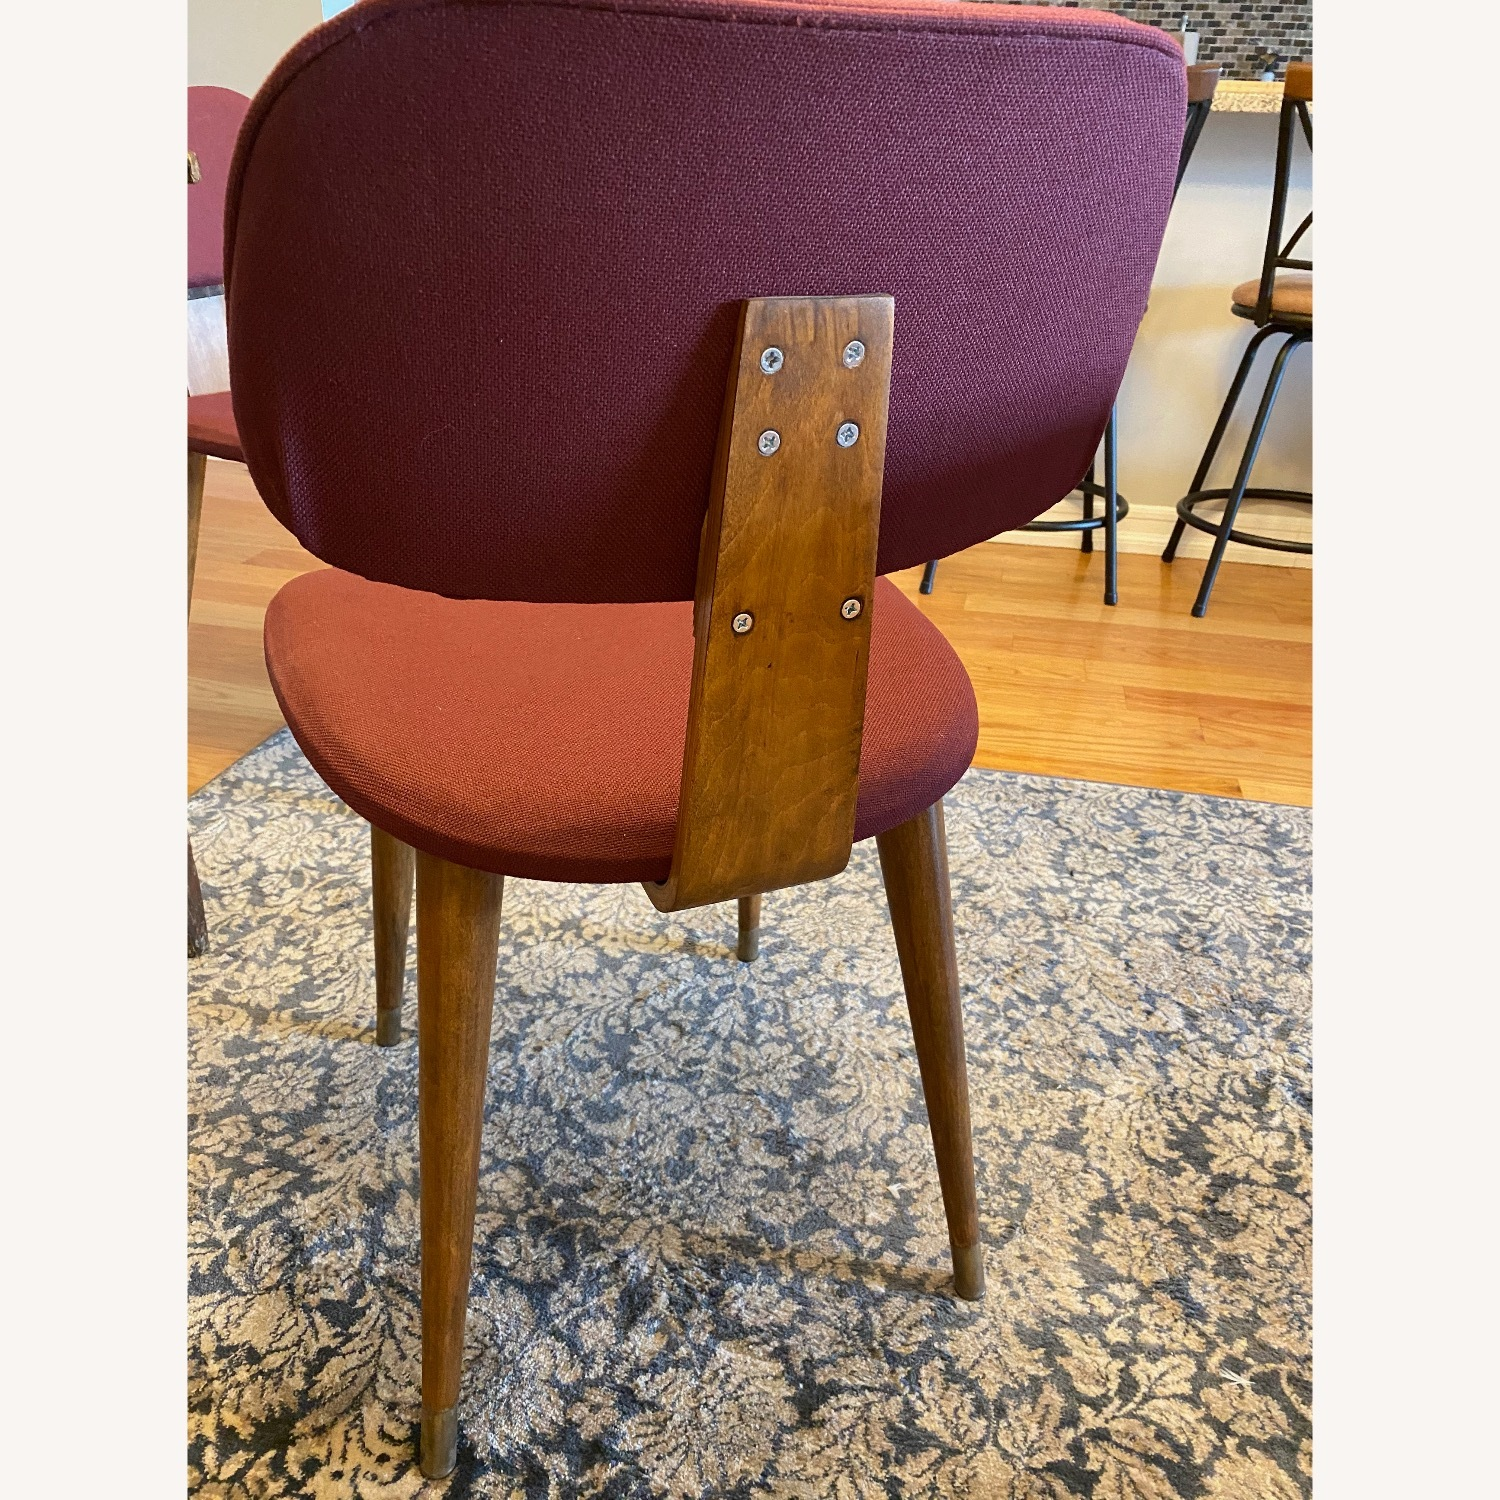 Midcentury Dining Chairs - image-1